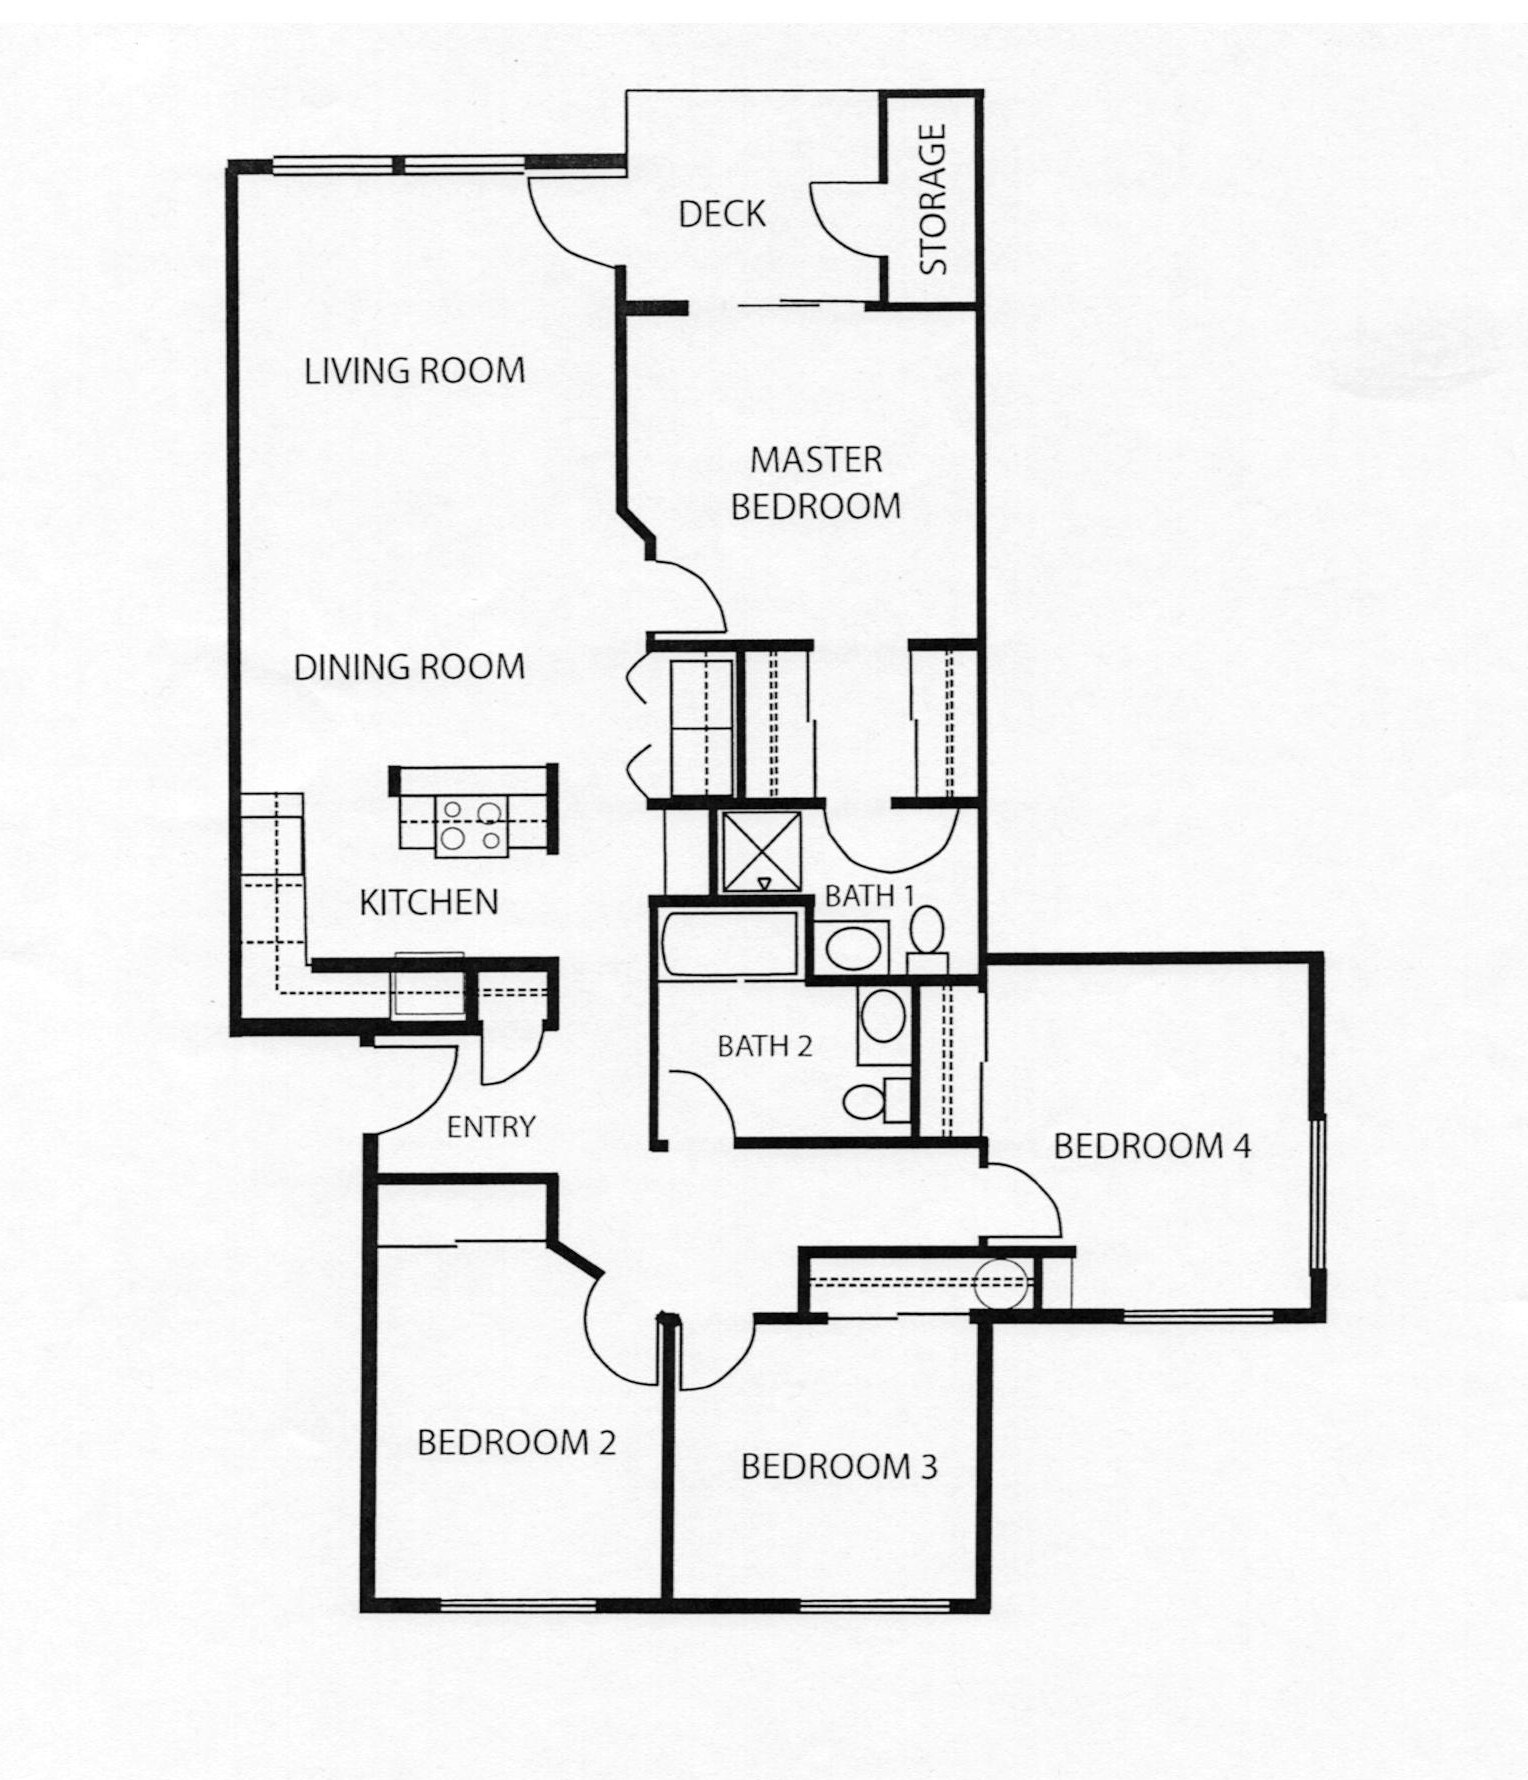 Bedroom Floor Layout Pricing And Floor Plans